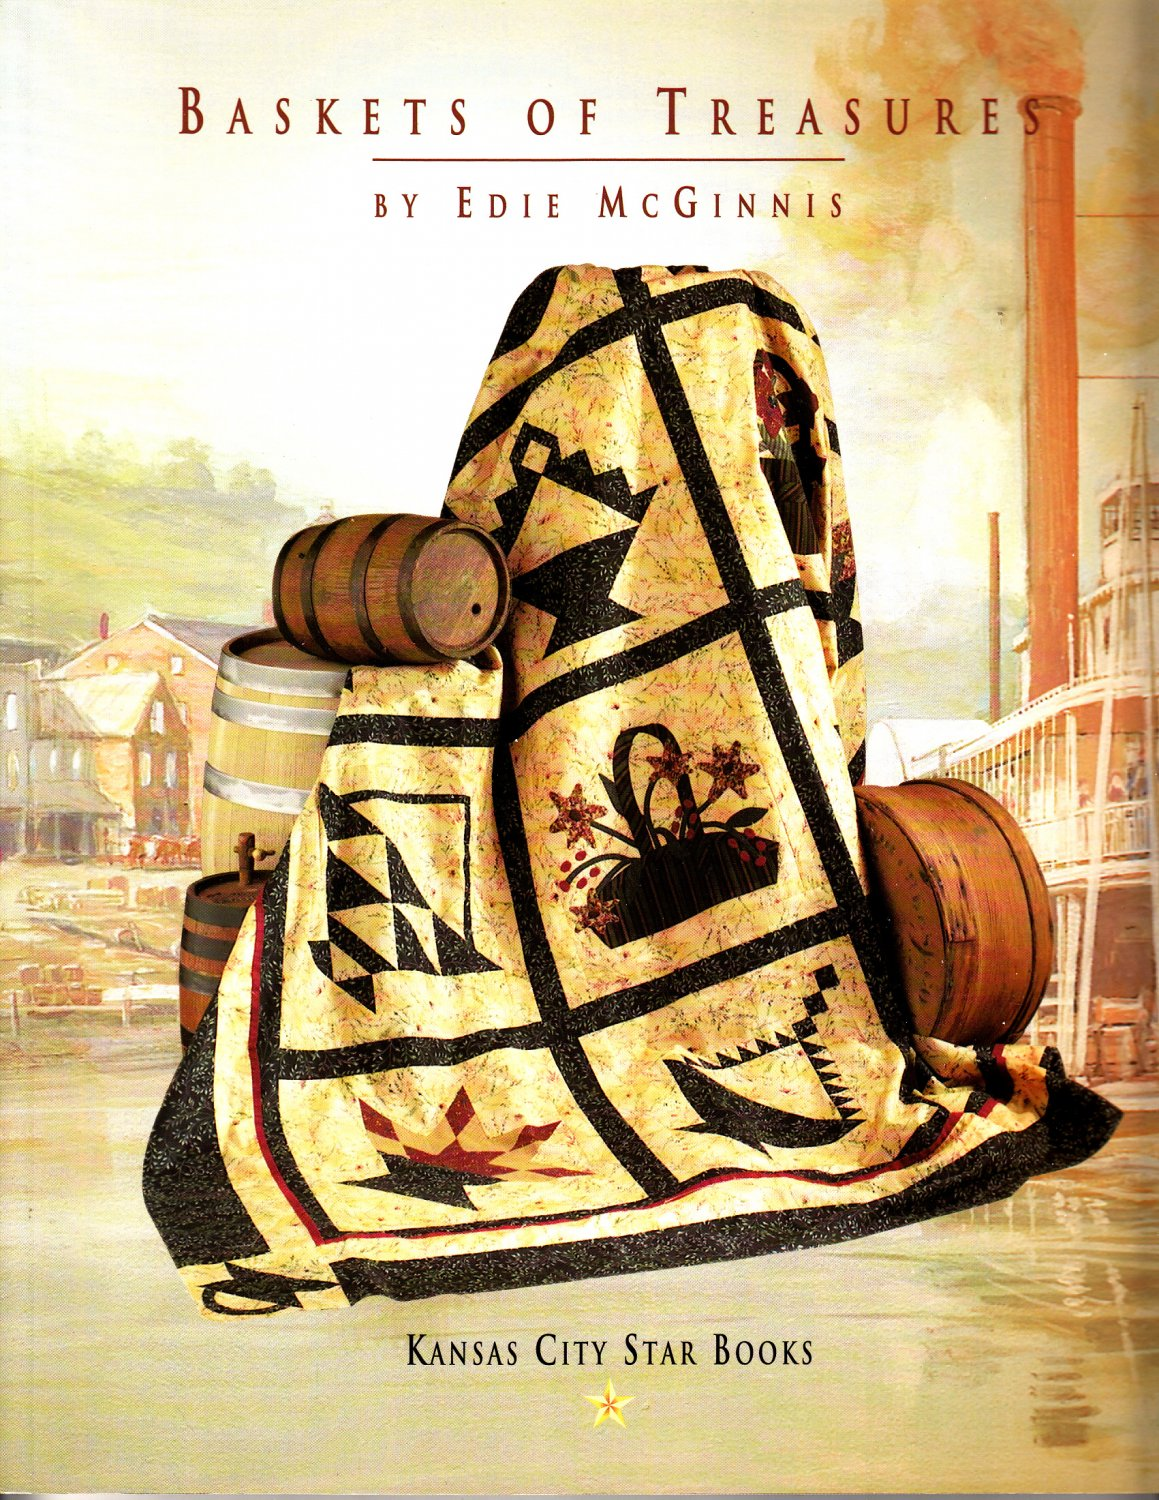 Baskets of Treasures by Edie McGinnis (Quilting Book, 2003)